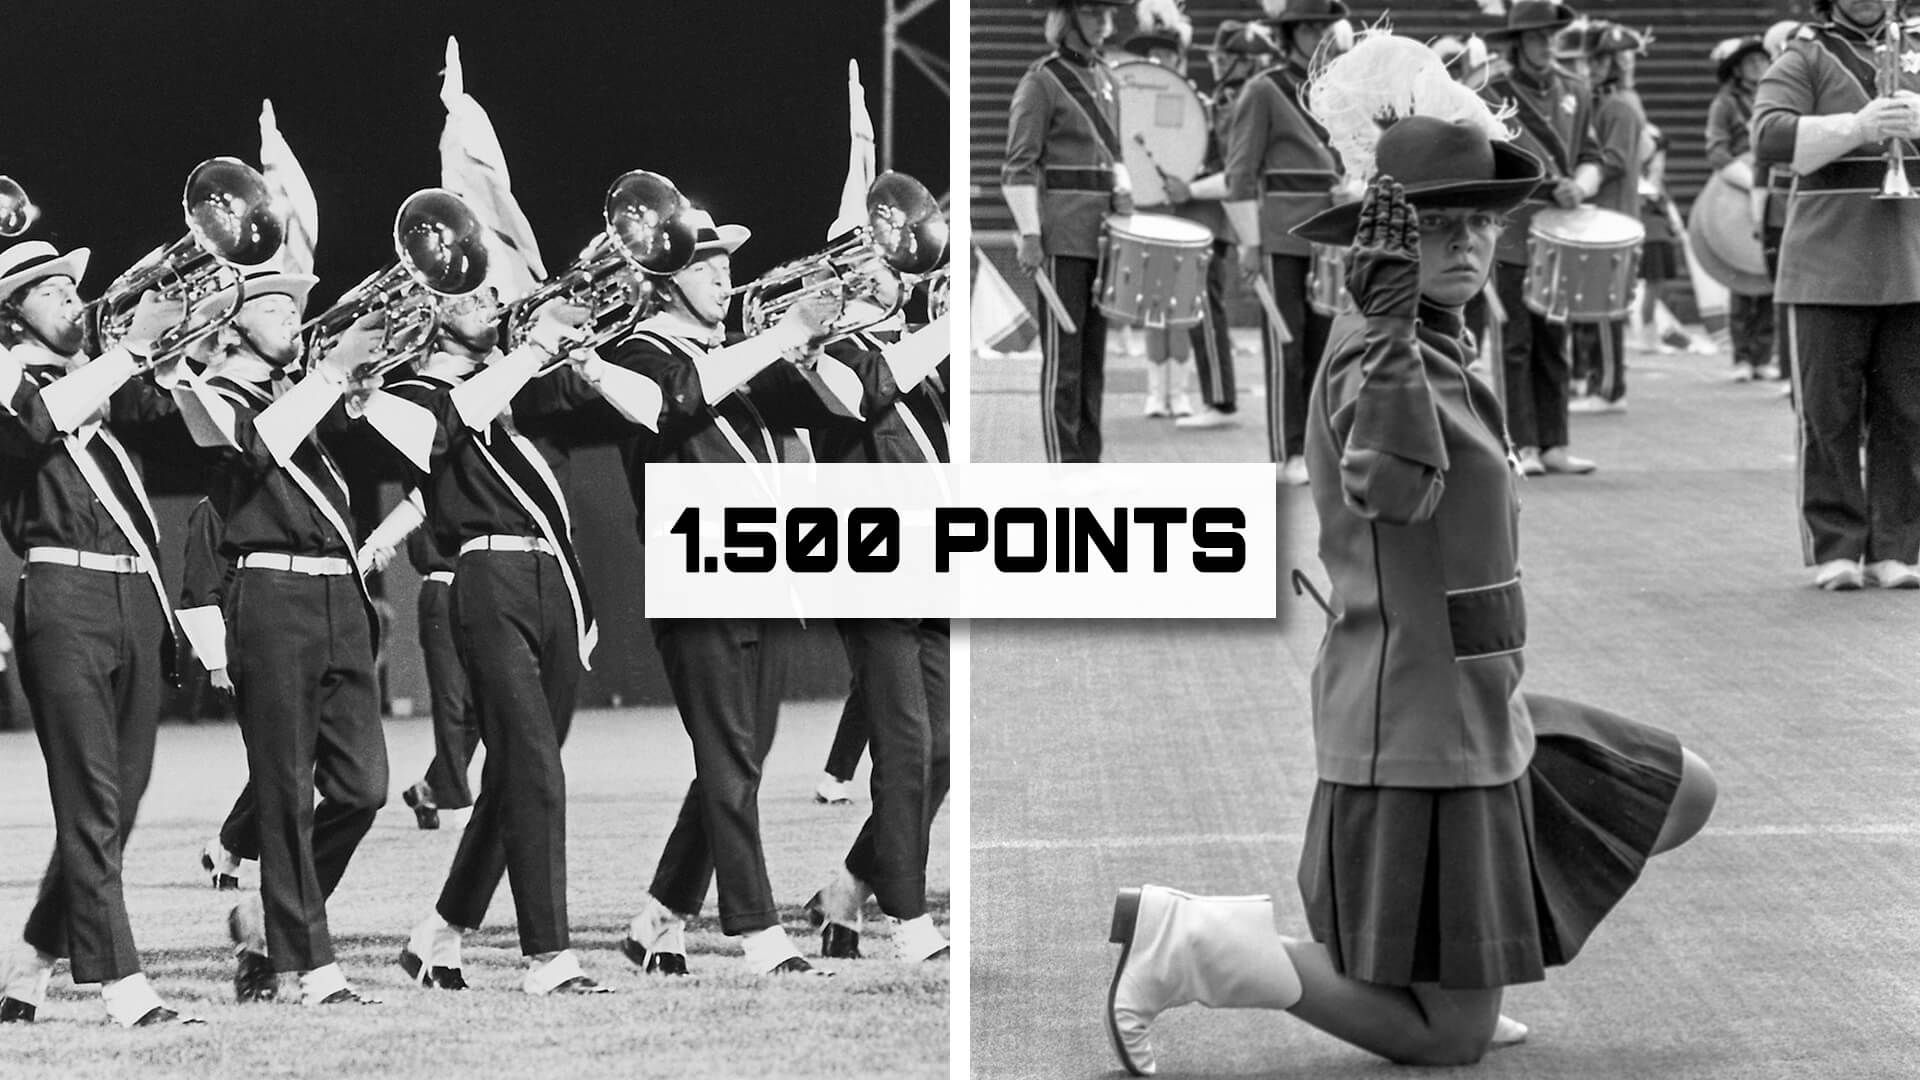 1.500 points - 1975